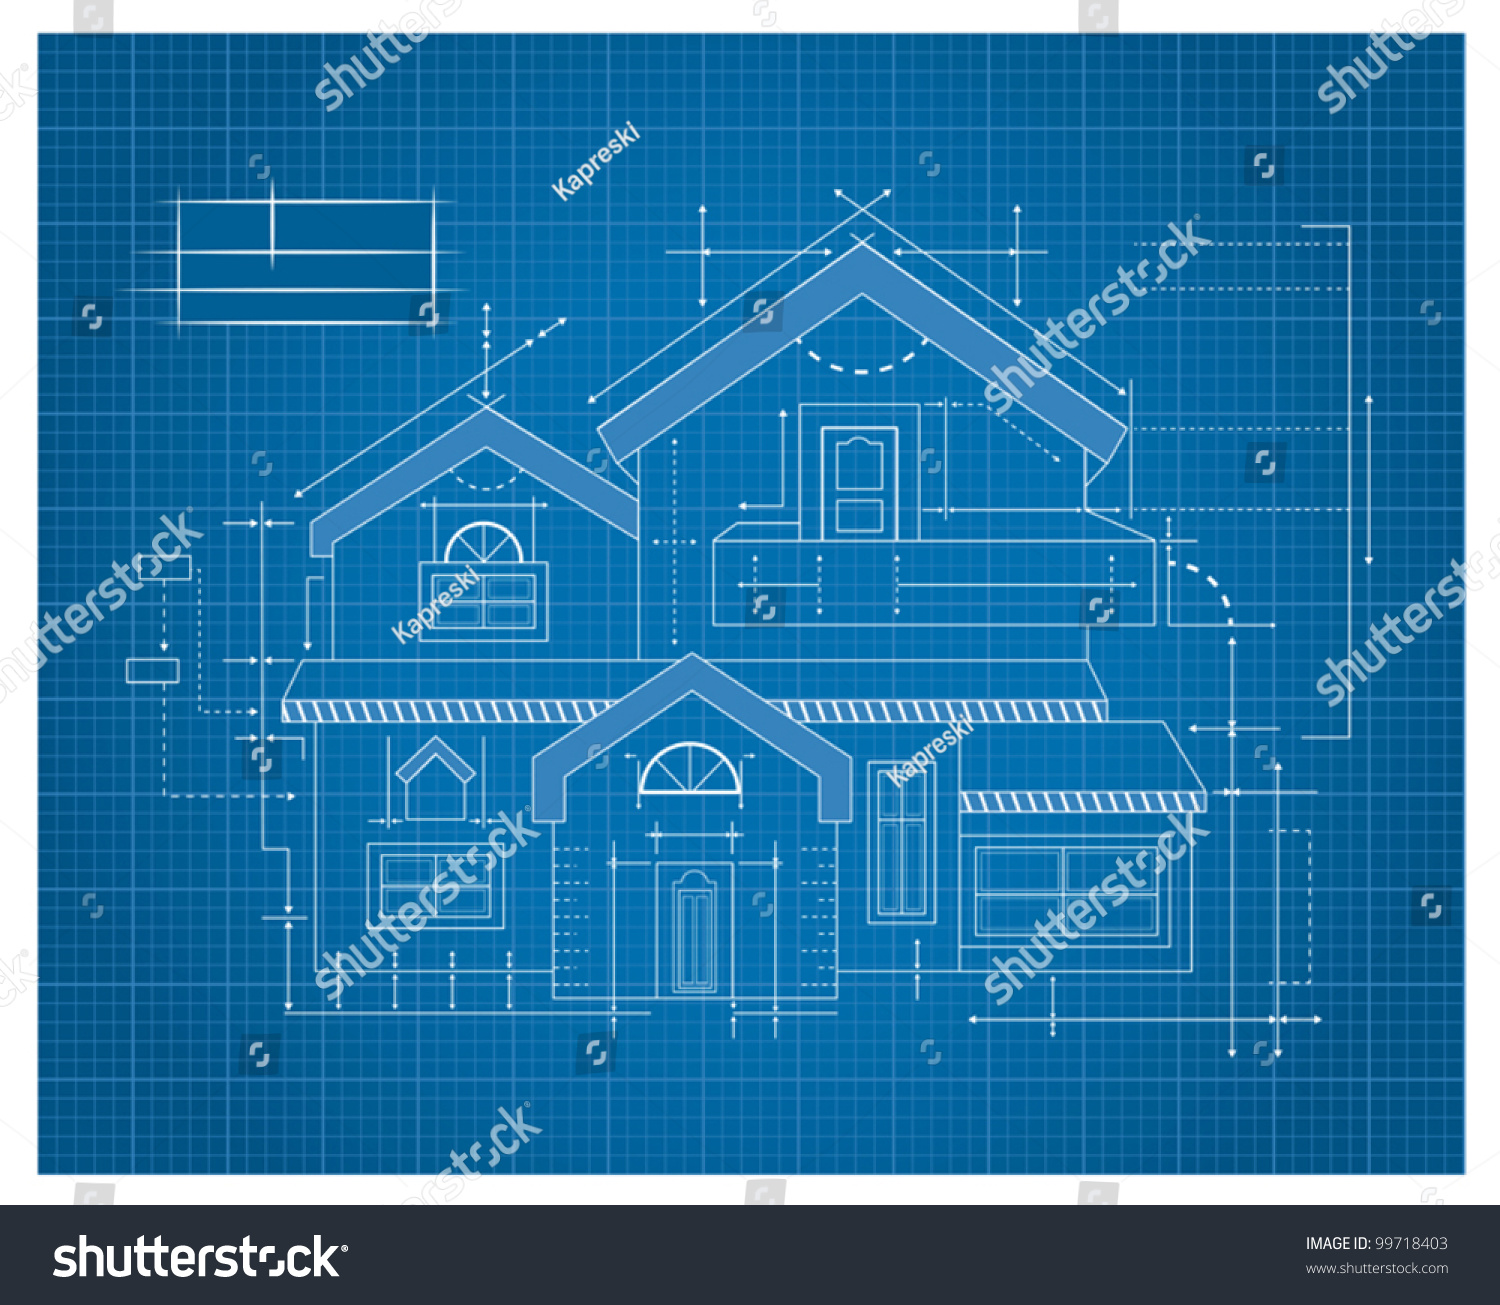 Modern house blueprint